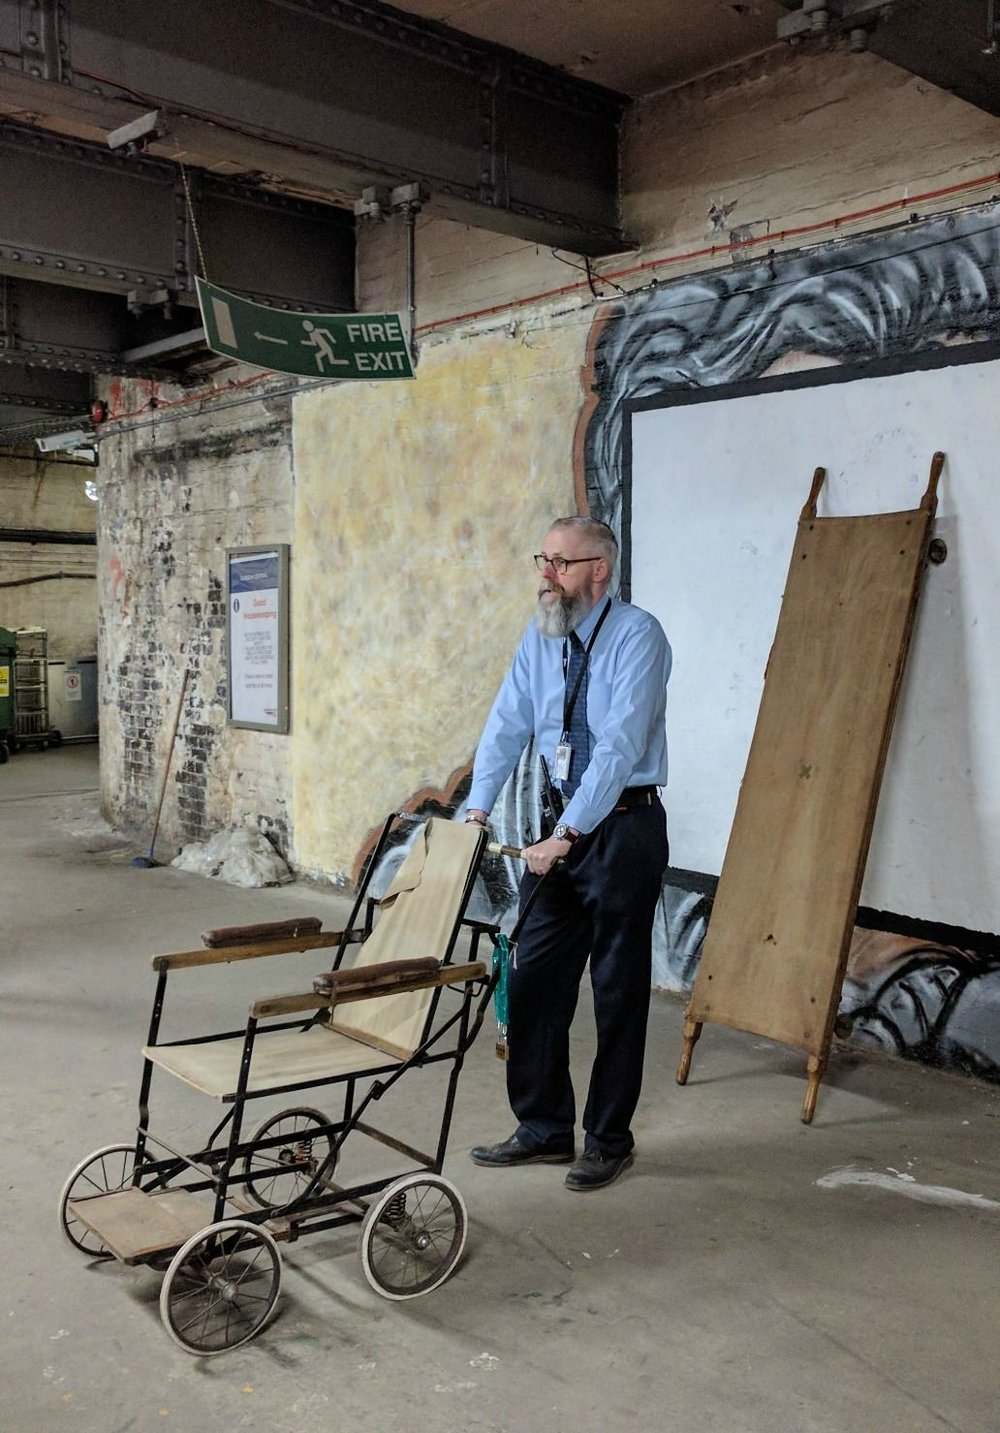 A World War I vintage wheelchair. Found in a store that had not been opened for years. Behind our guide, a stretcher of the same vintage. Before the decision not to repatriate bodies, the corpses of soldiers were taken home on these stretchers and left on the platform for relatives to identify.